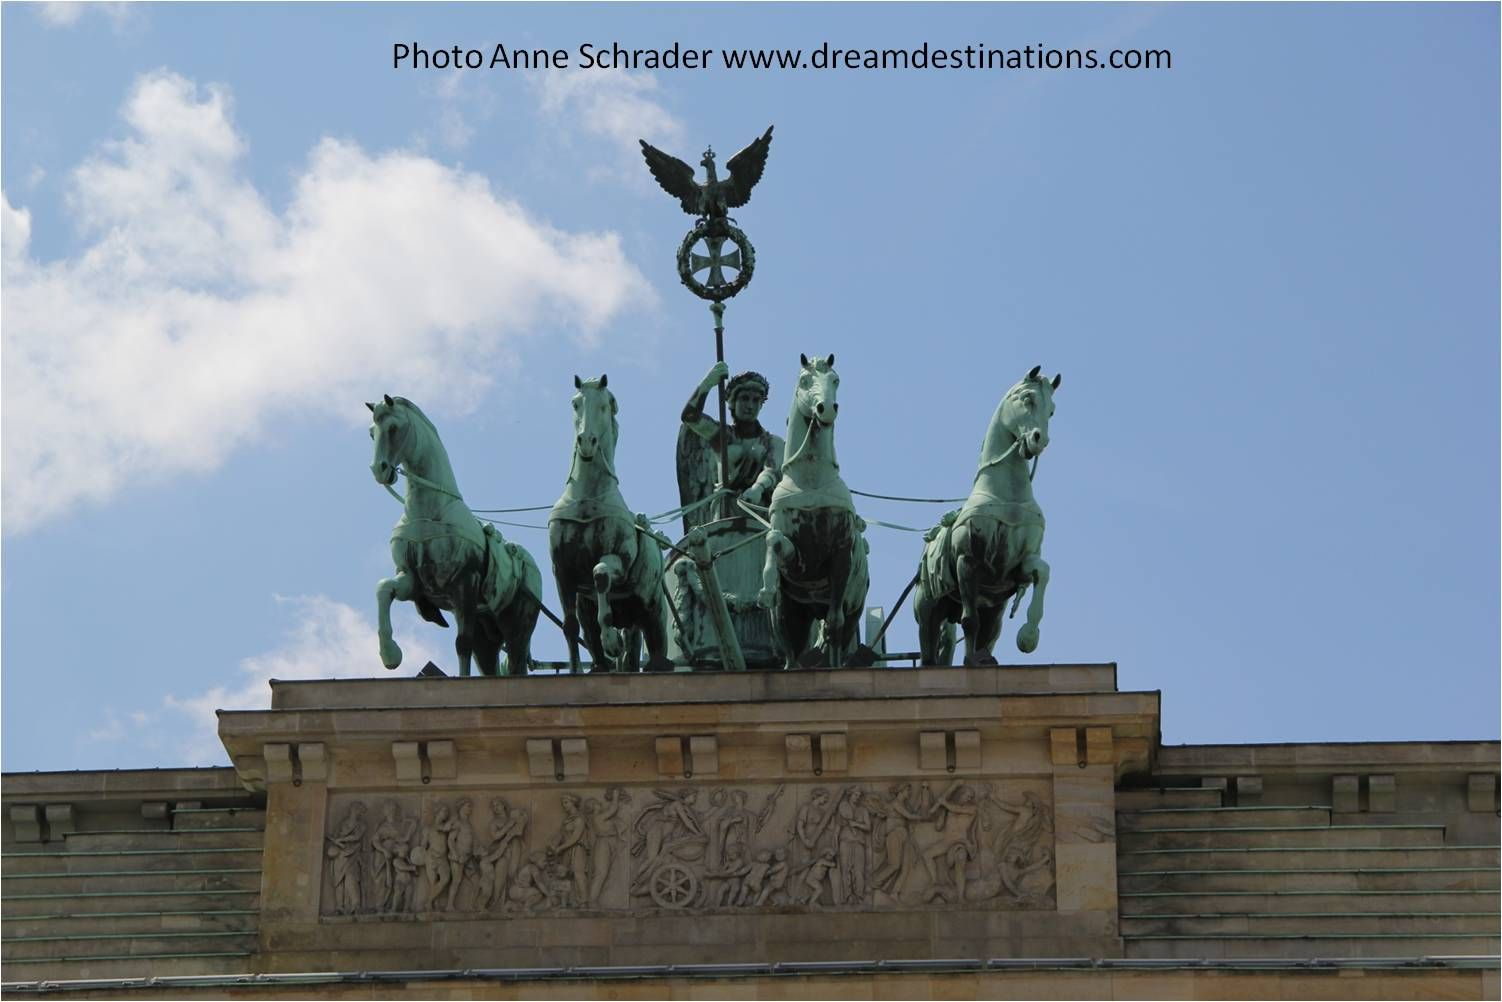 Quadriga Statue Sits Atop The Brandenburger Tor Gate Berlin Germany 2014 The Statue Is Called The God River Cruises In Europe Visit Europe European Vacation